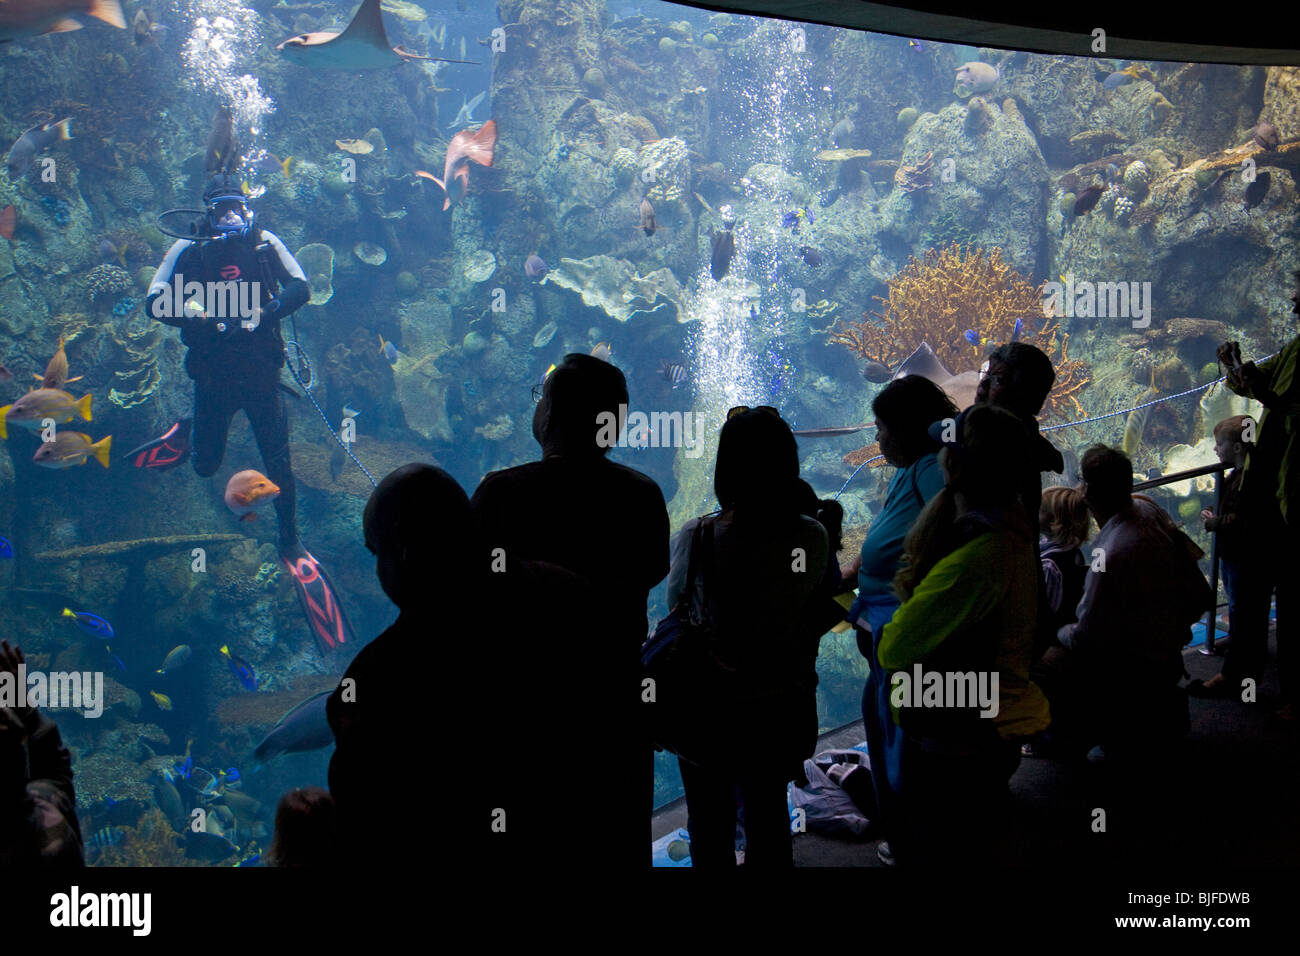 Tropical Pacific Gallery, Aquarium of the Pacific, Long Beach, Los Angeles County, California, USA - Stock Image